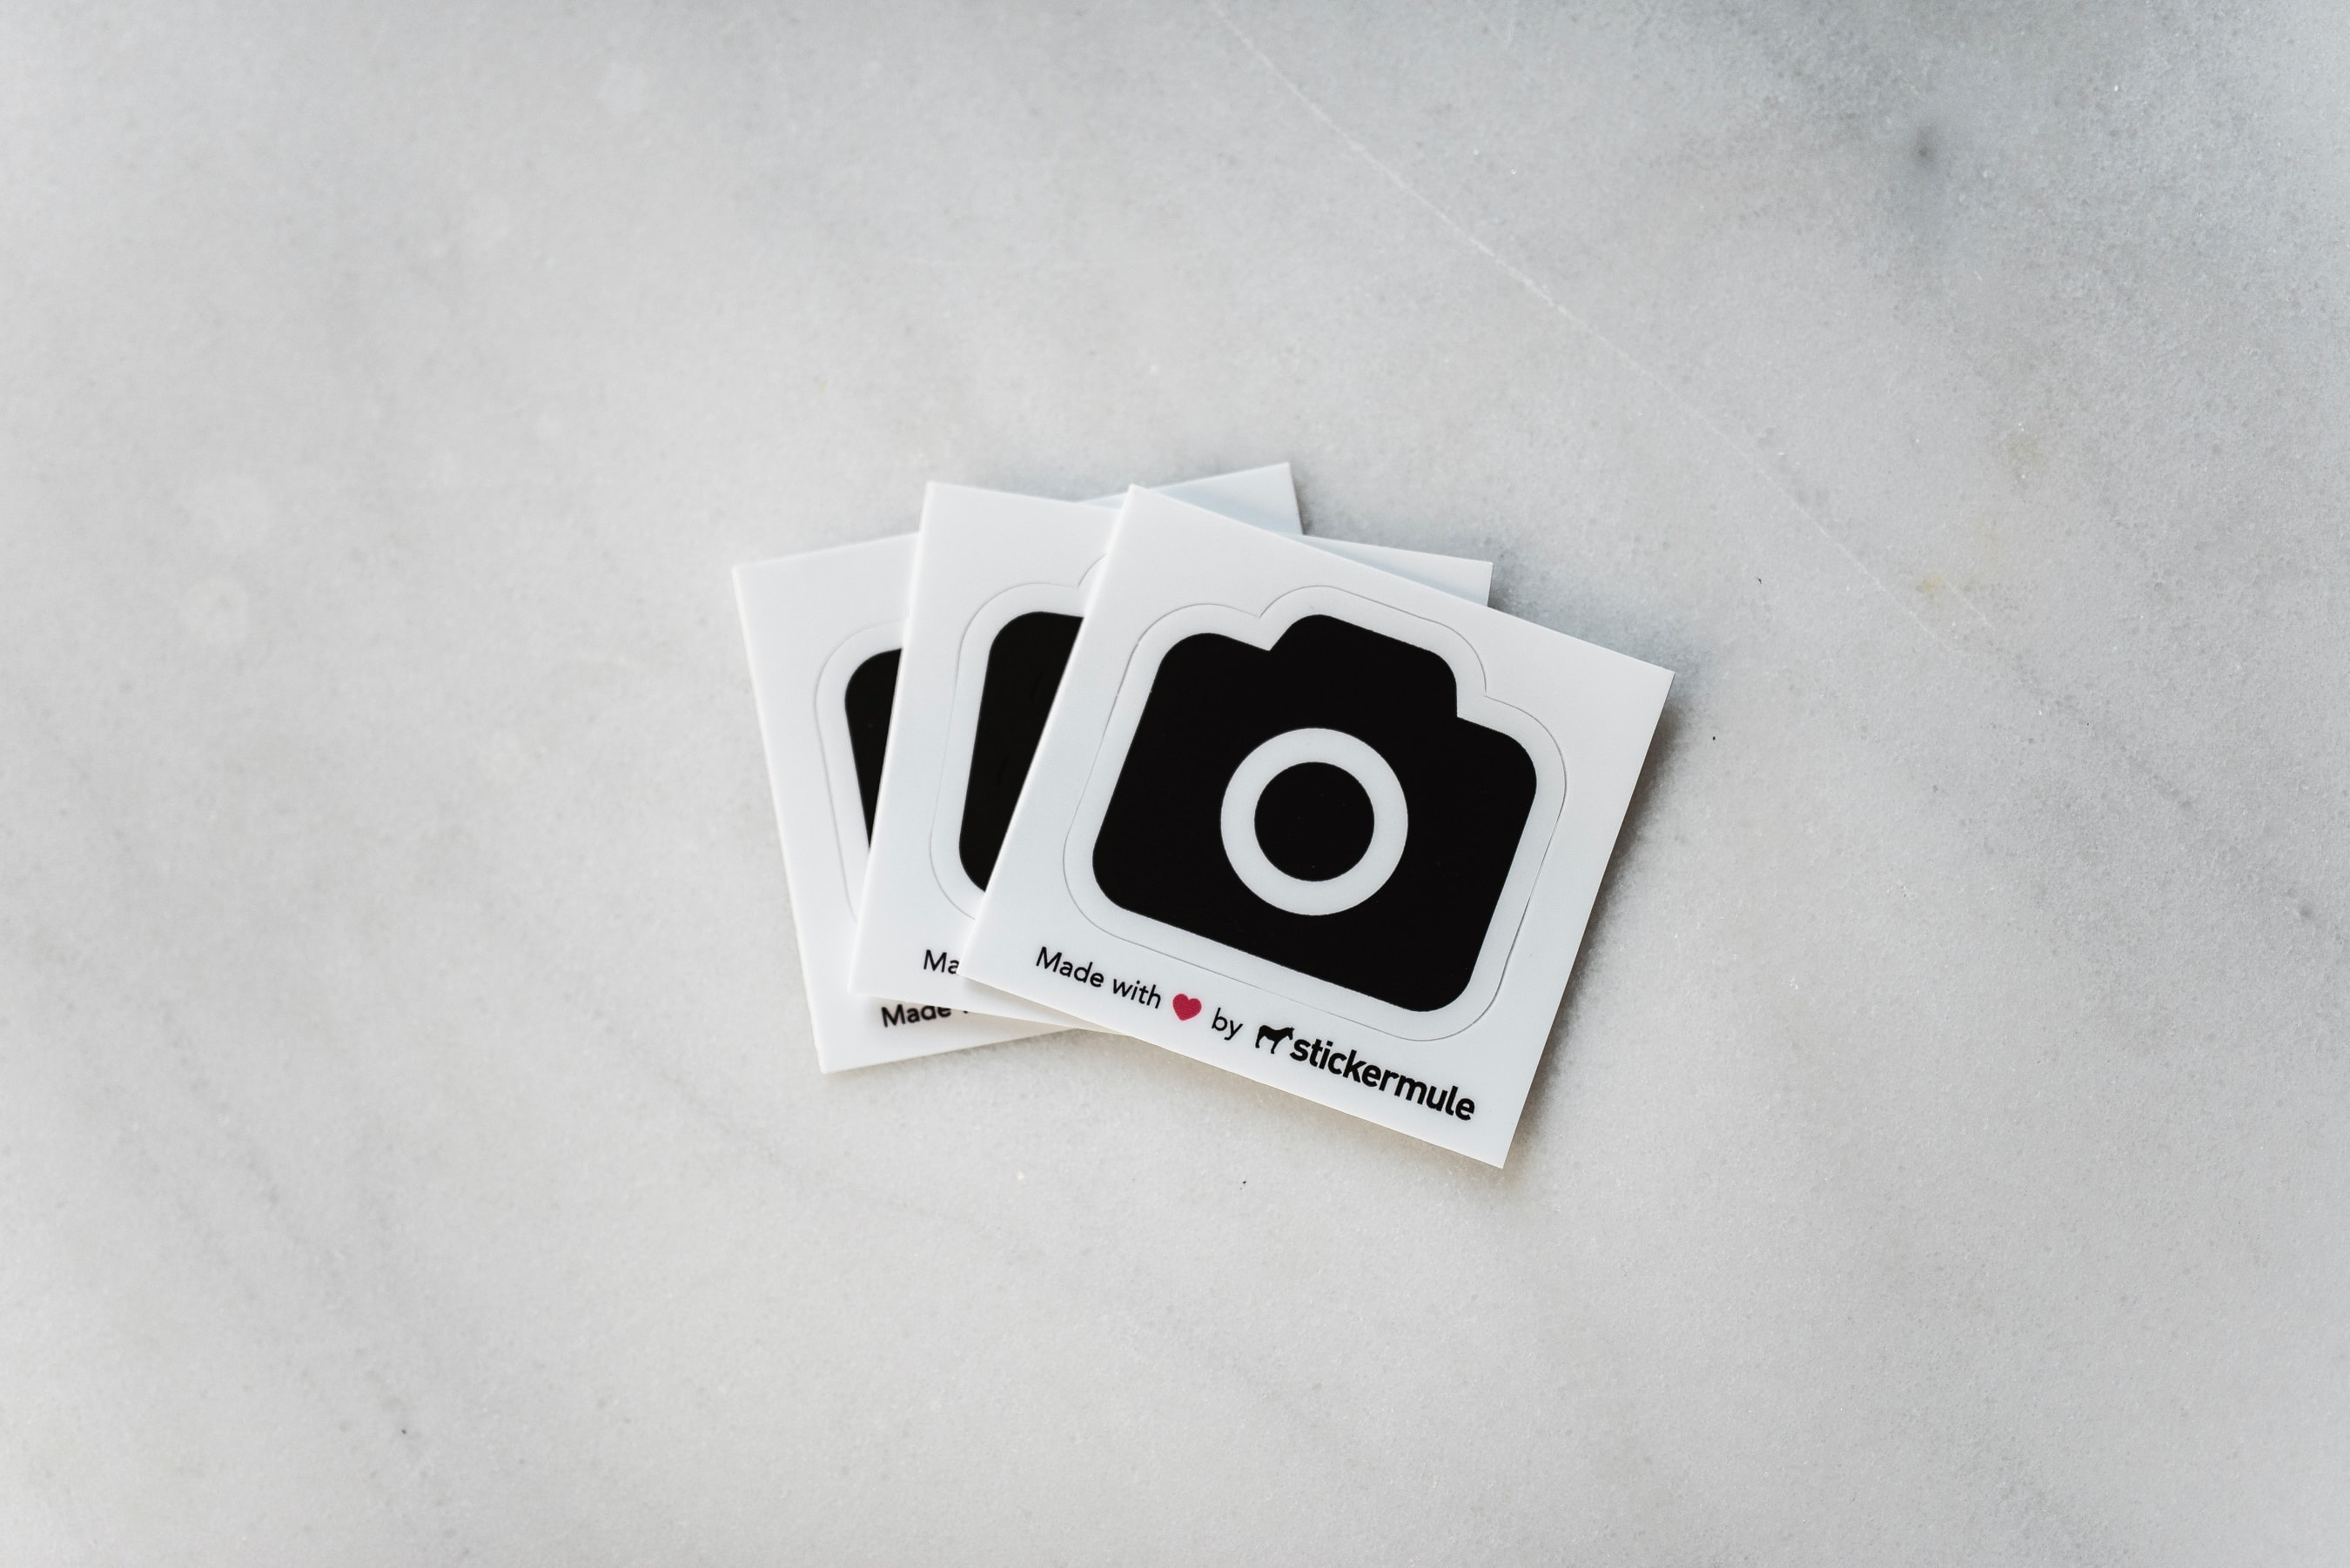 Stickermule stickers for Unsplash on a marble table